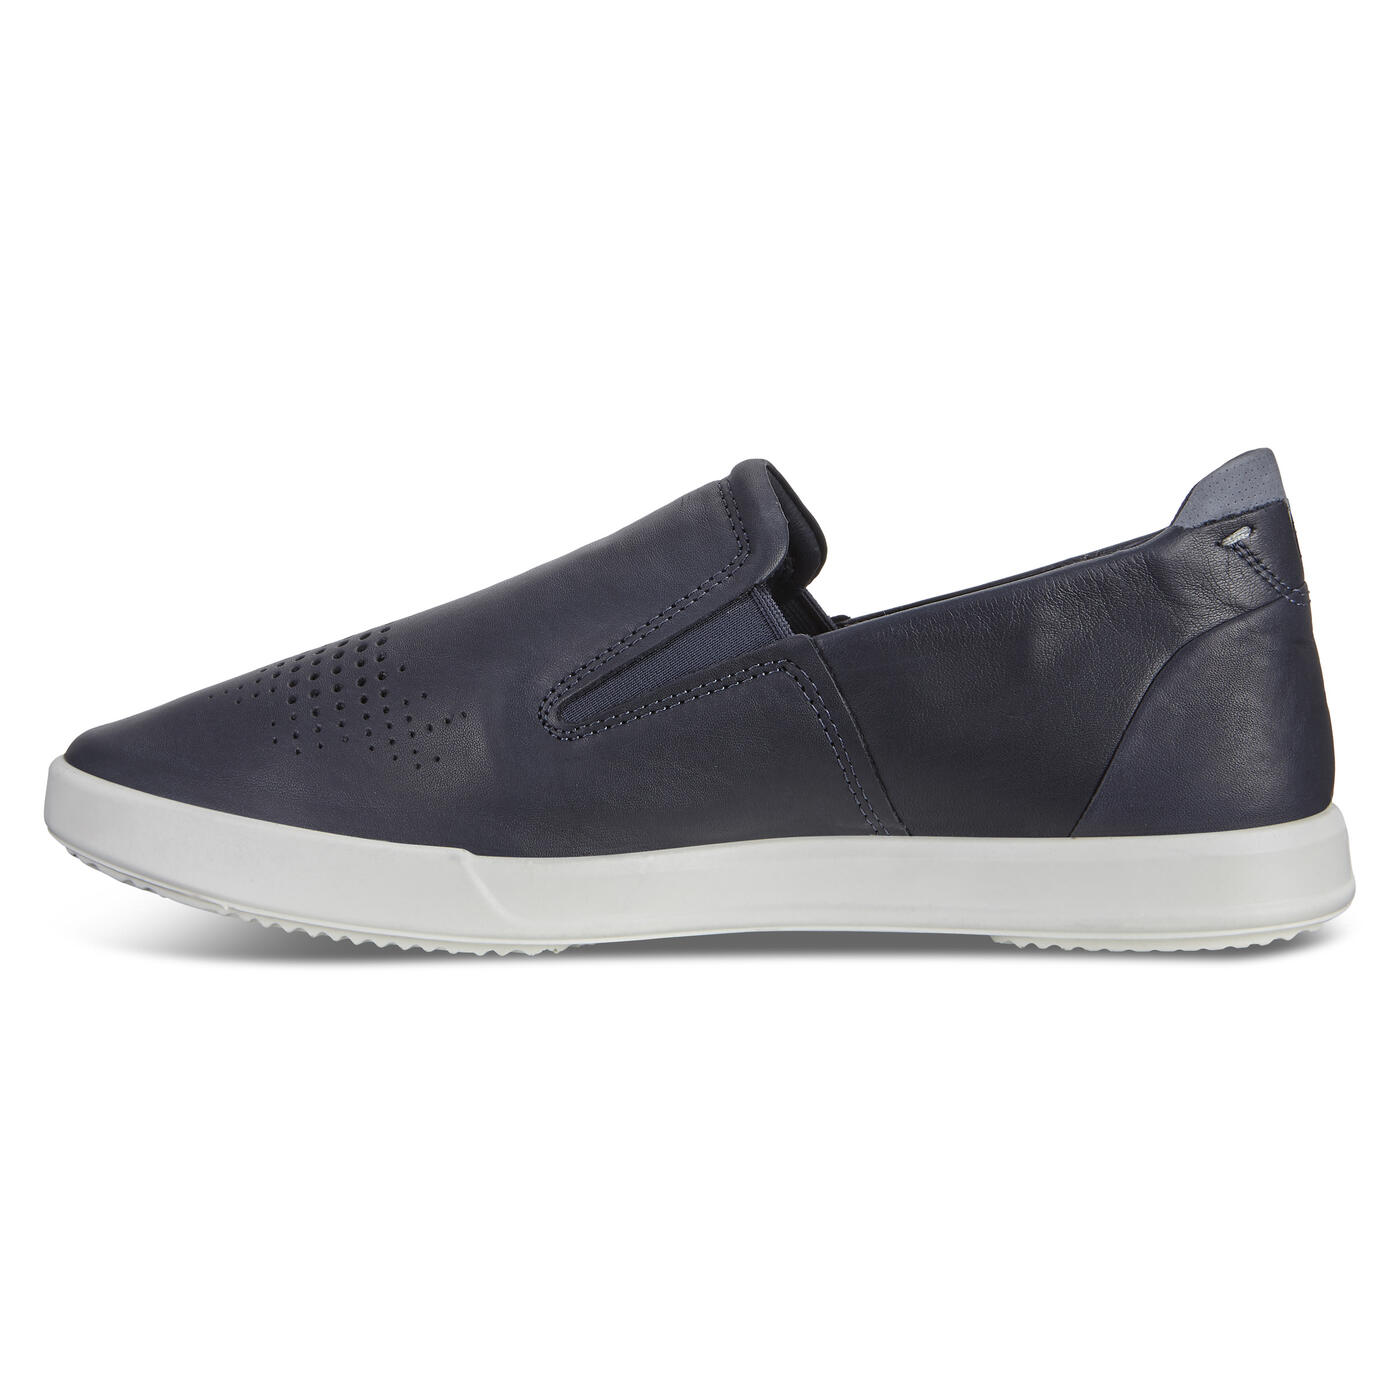 ECCO COLLIN2 Paccable Sneaker Slip-On